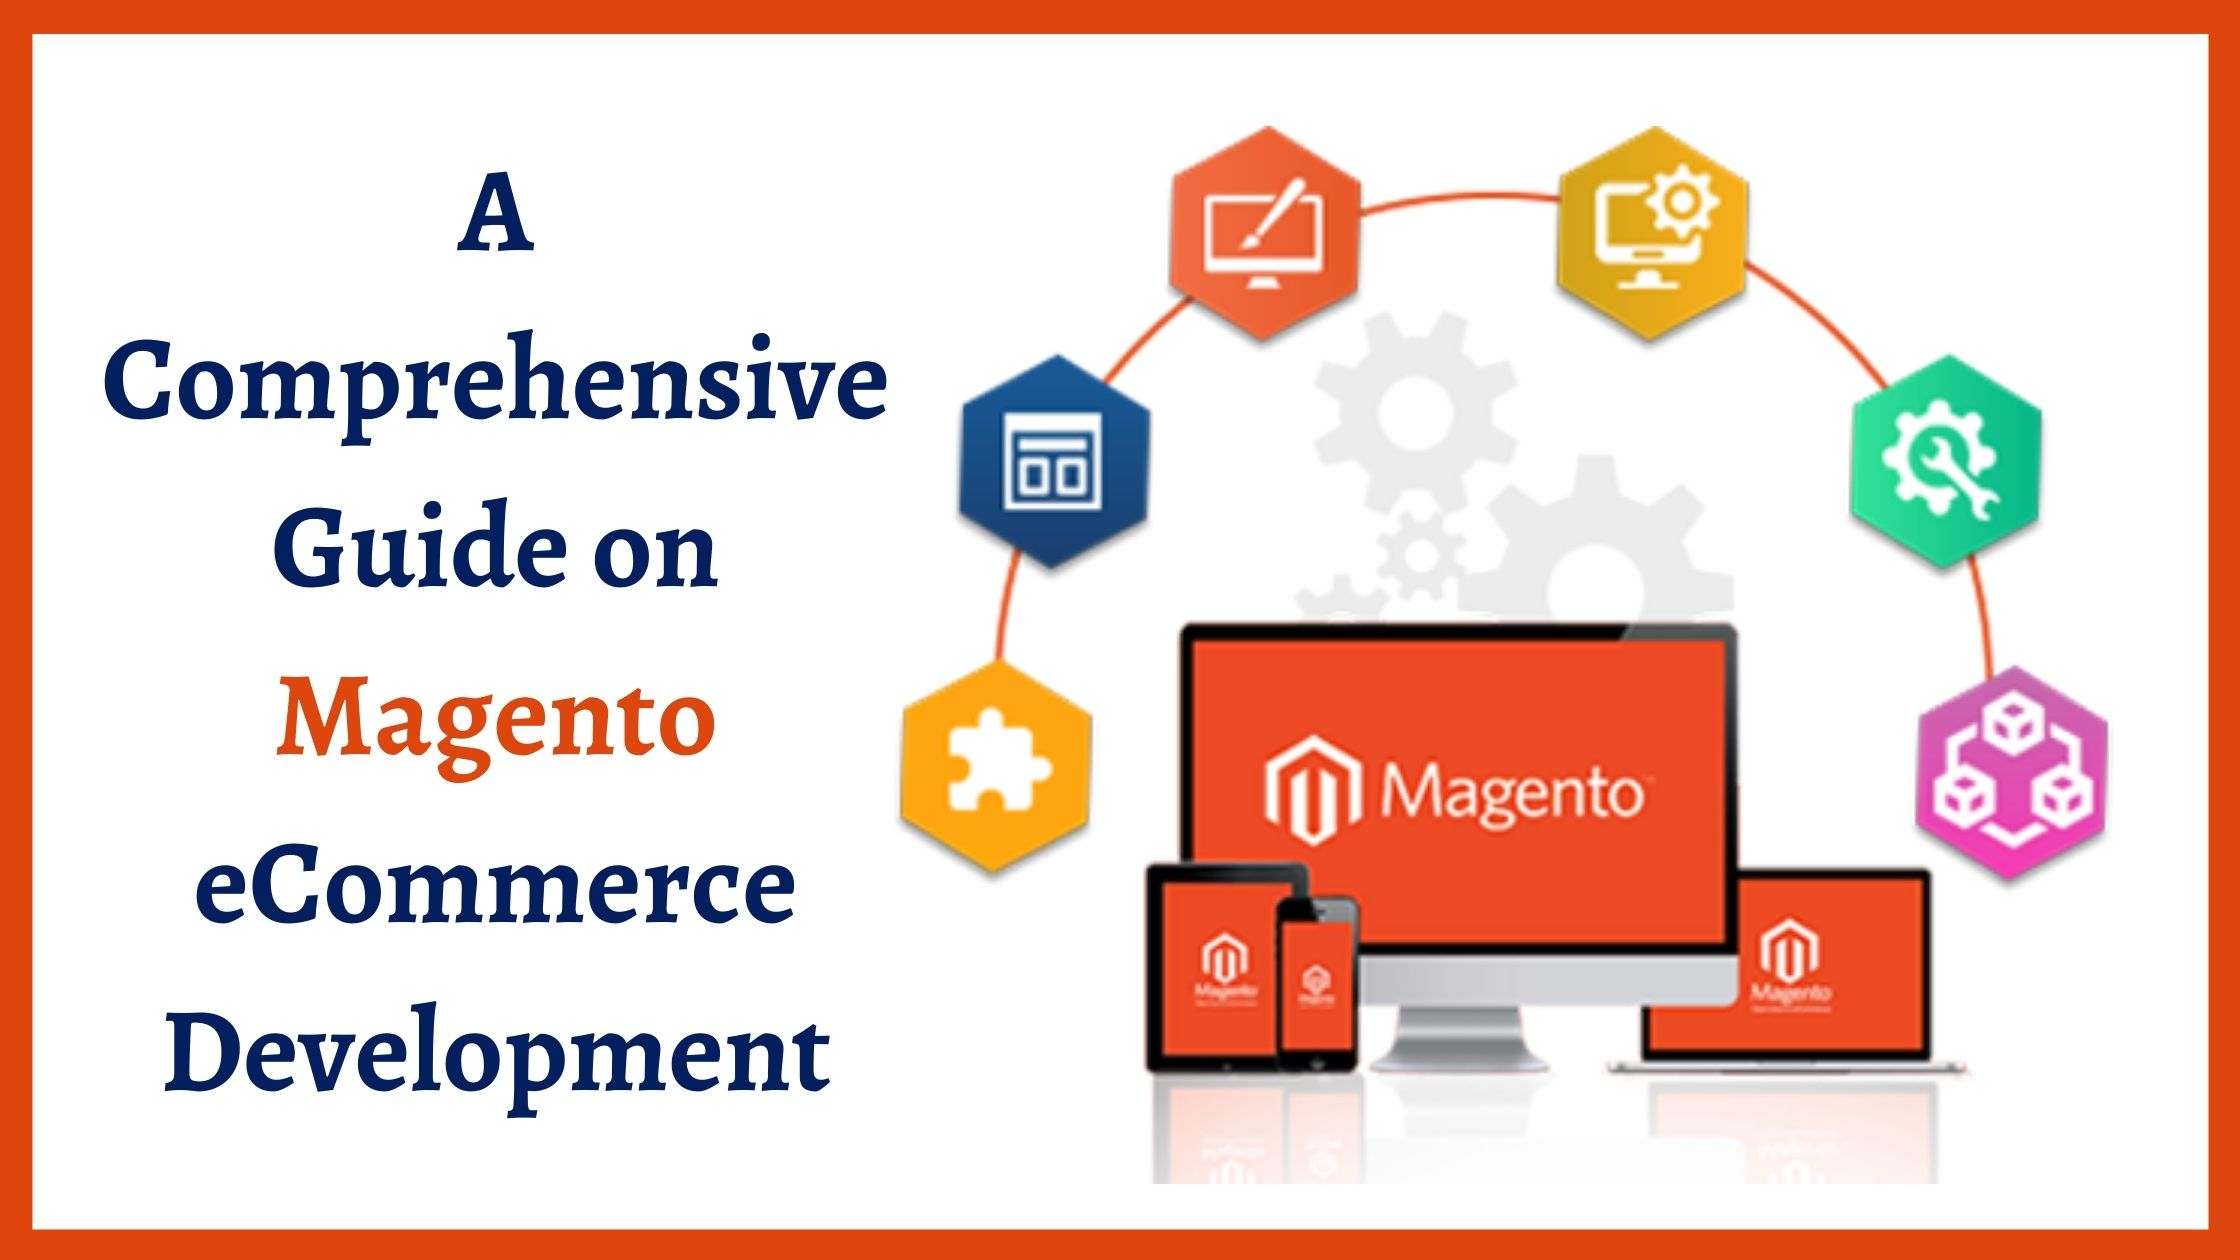 A Comprehensive Guide on Magento eCommerce Development (1)